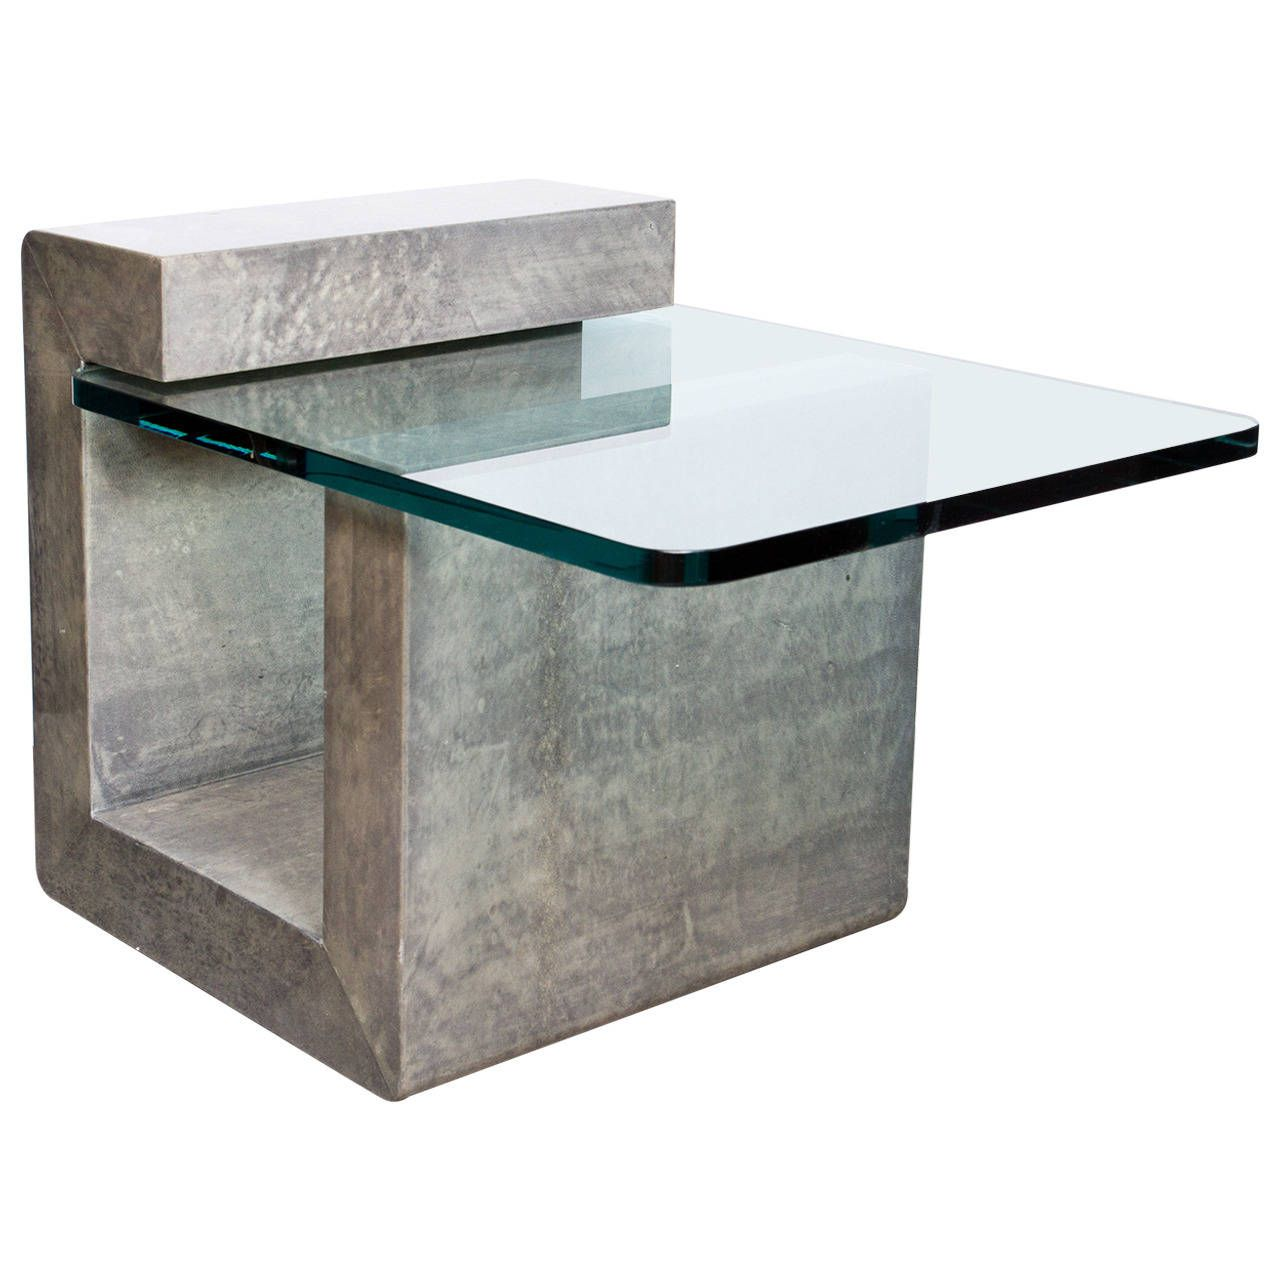 Modernist lacquered parchment side table tables unique for Modern end table ideas